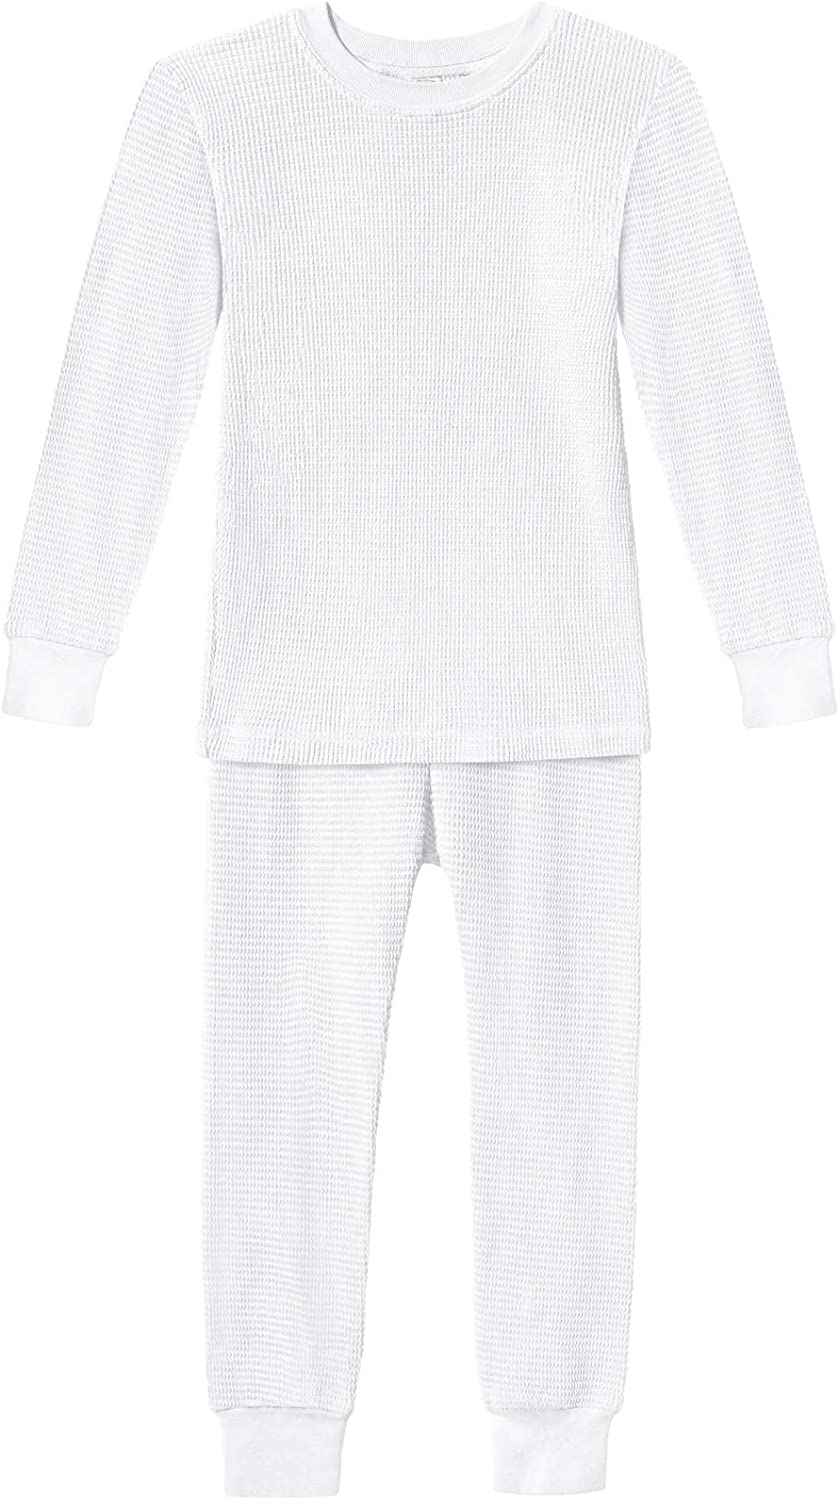 City Threads Boys and Girls Thermal Underwear Base Layer Long John Set - Soft 100% Cotton - Made in USA